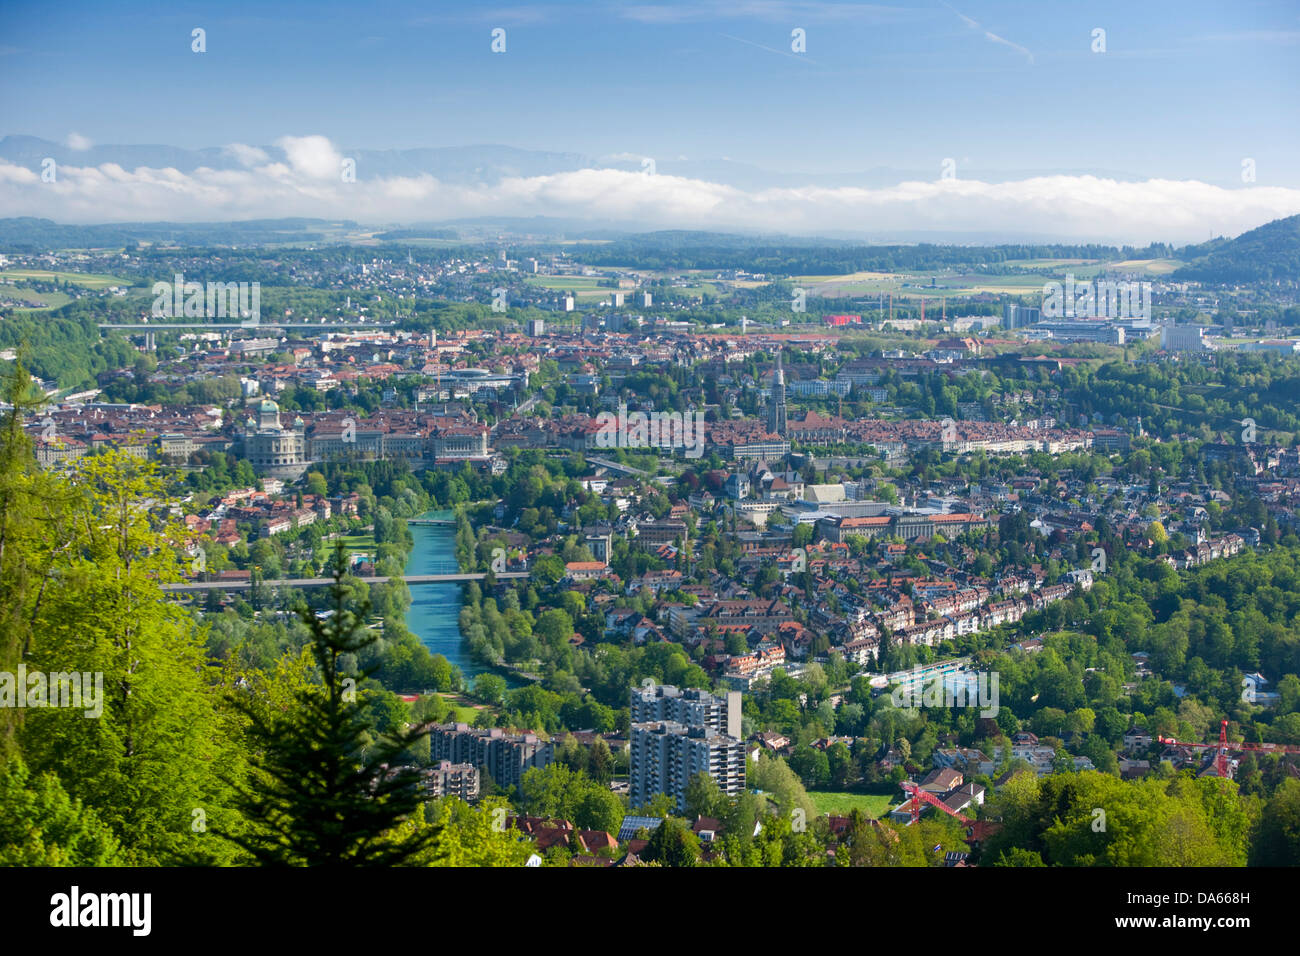 Town, City, Aare, canton, Bern, town, city, Switzerland, Europe, overview, Old Town - Stock Image